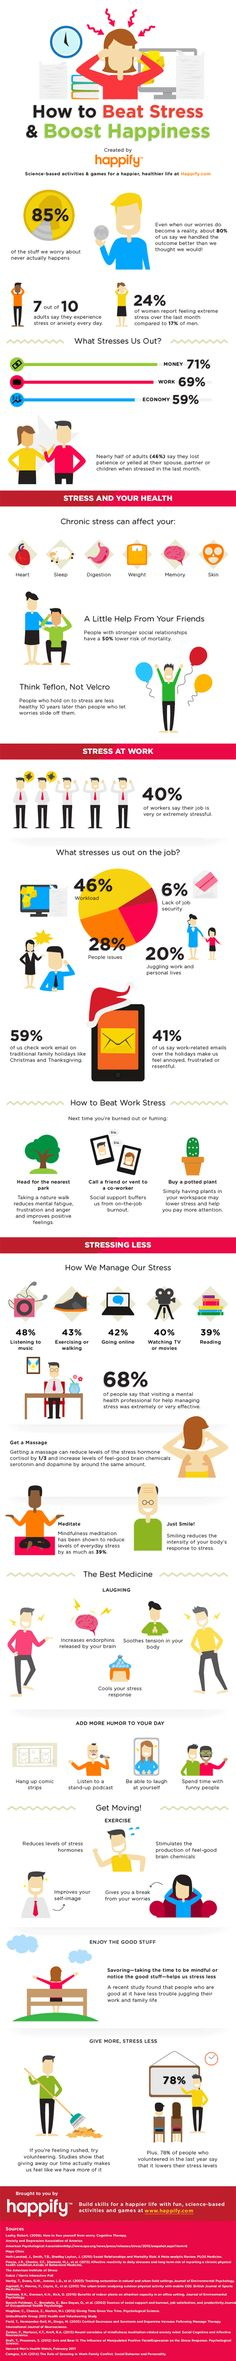 How To Be Happy And Beat Stress | Infographic